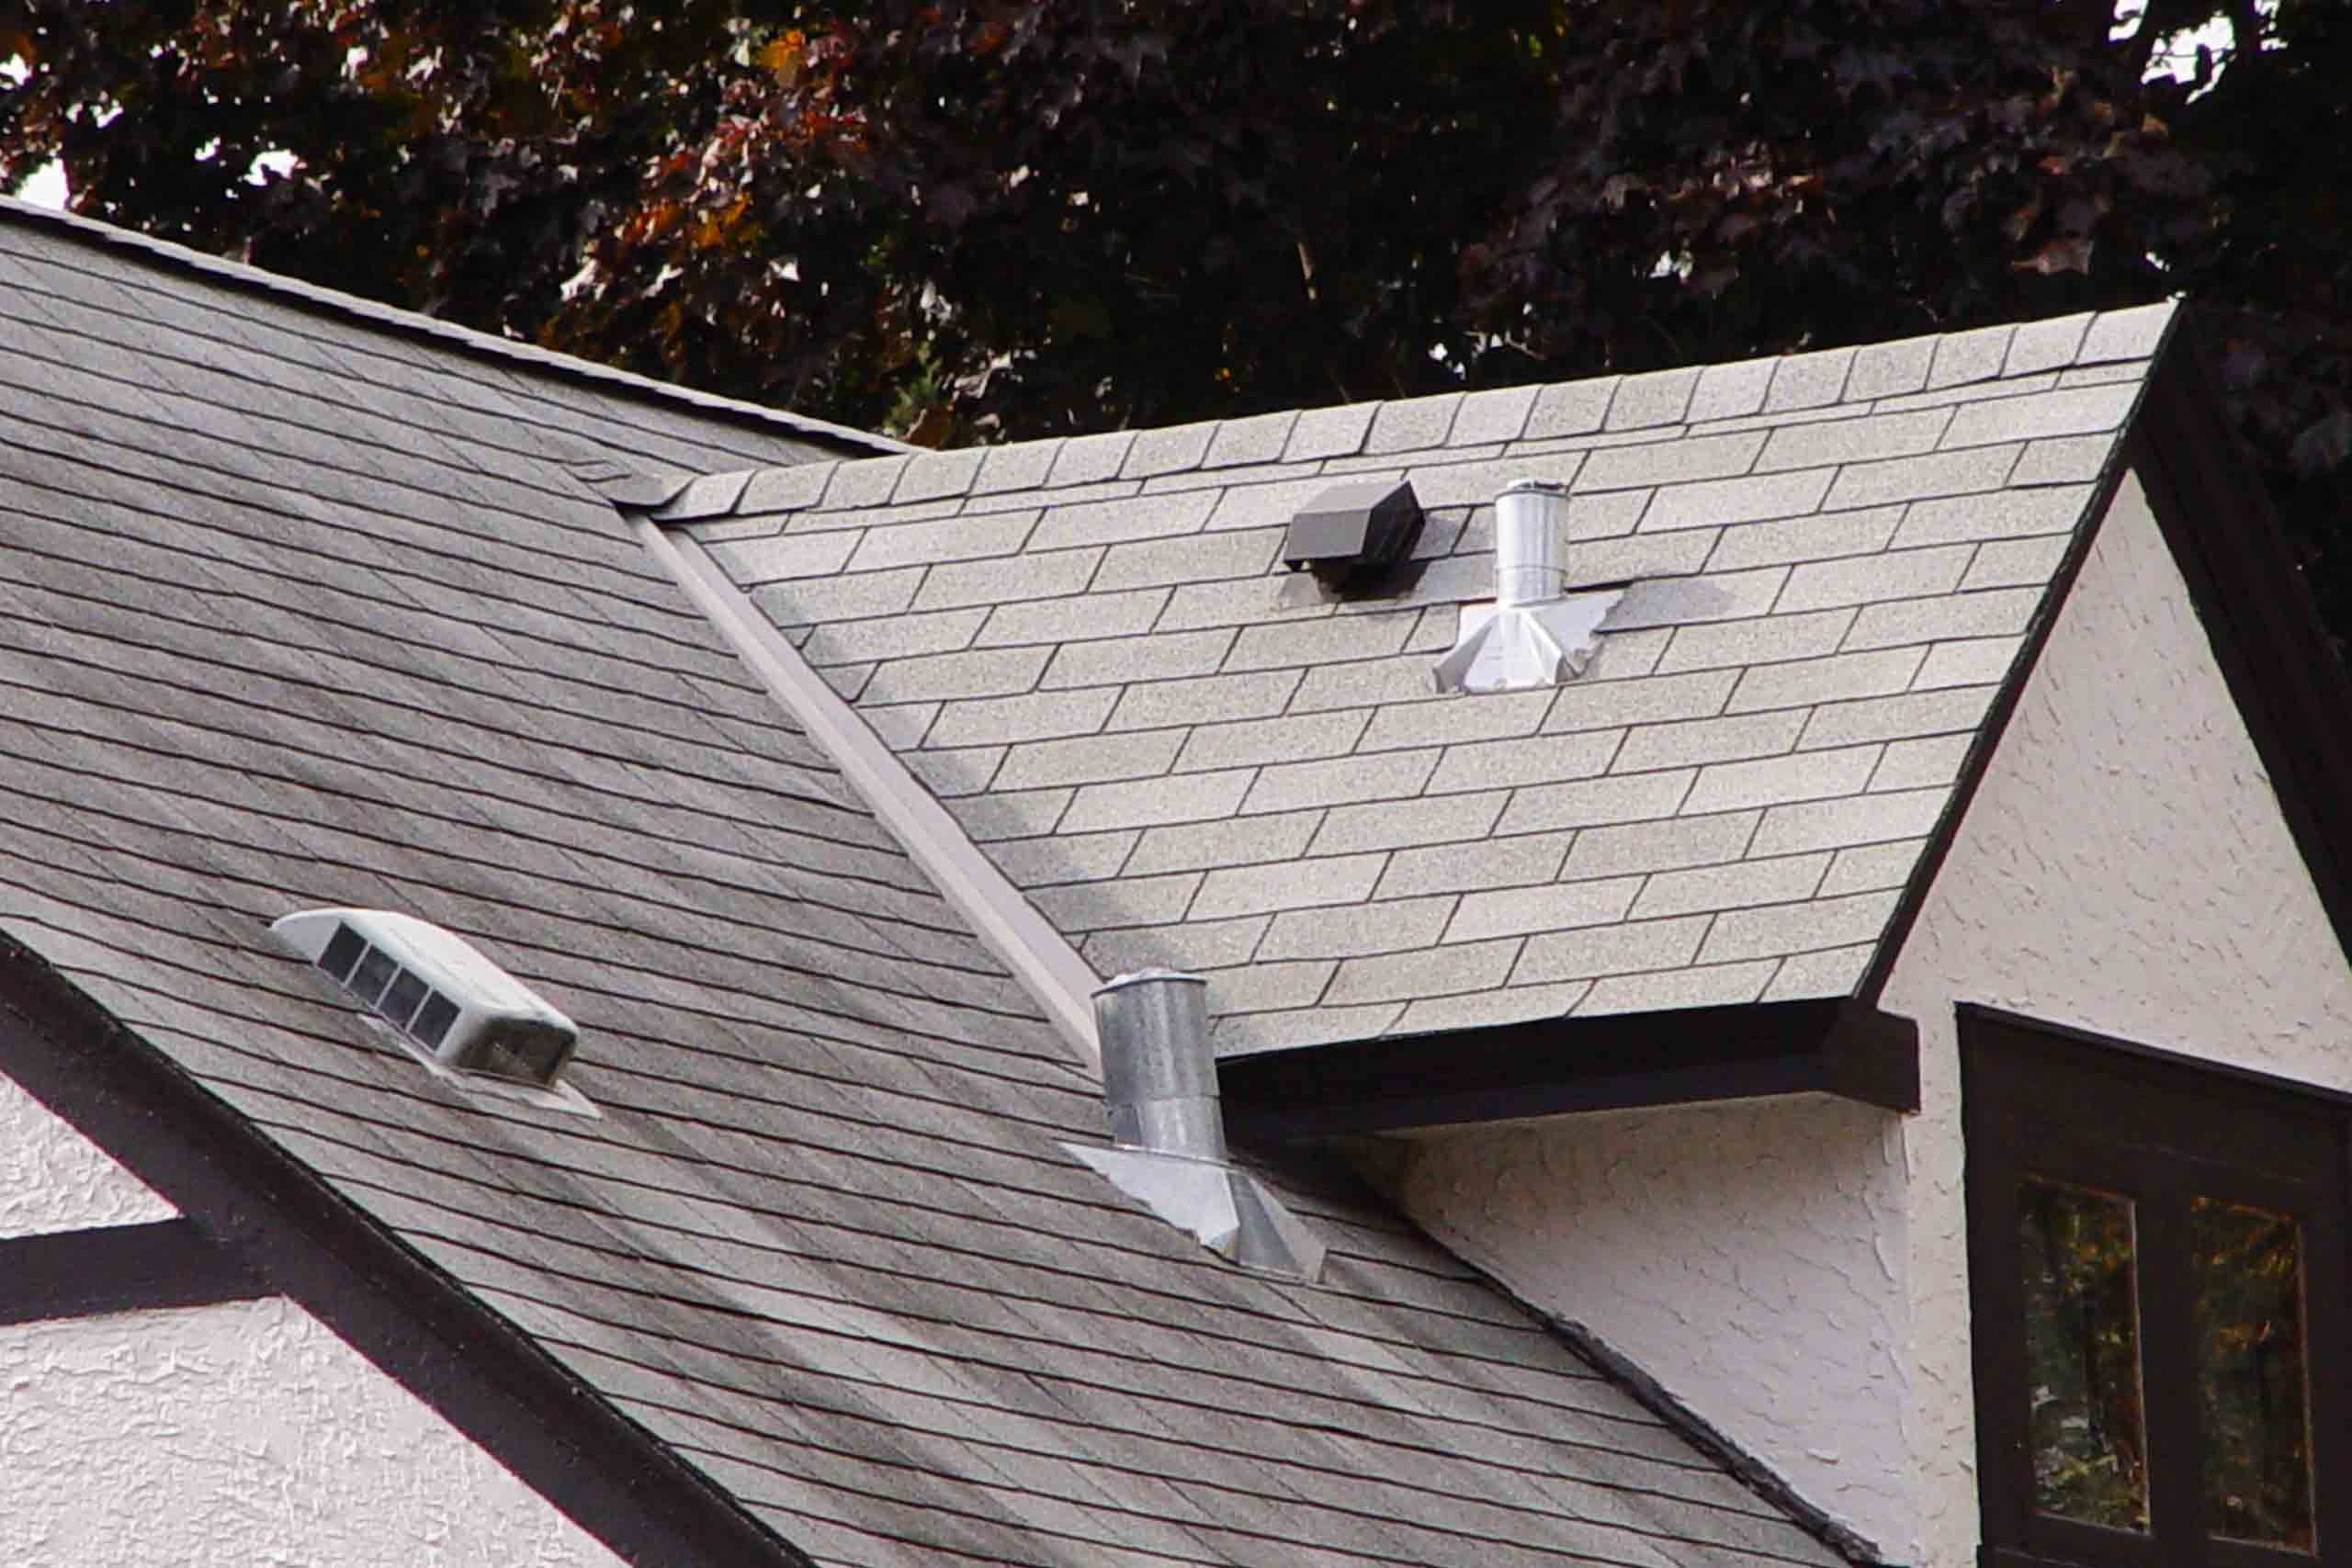 Roof Vent Pipe Boot Specs by Luxury Metals Info On House Roof Vents on roof decks on house, side vents on house, foundation vents on house, copper roof on house, tile roof on house, gable vents on house, roof shingles on house, roof windows on house, exterior vents on house,